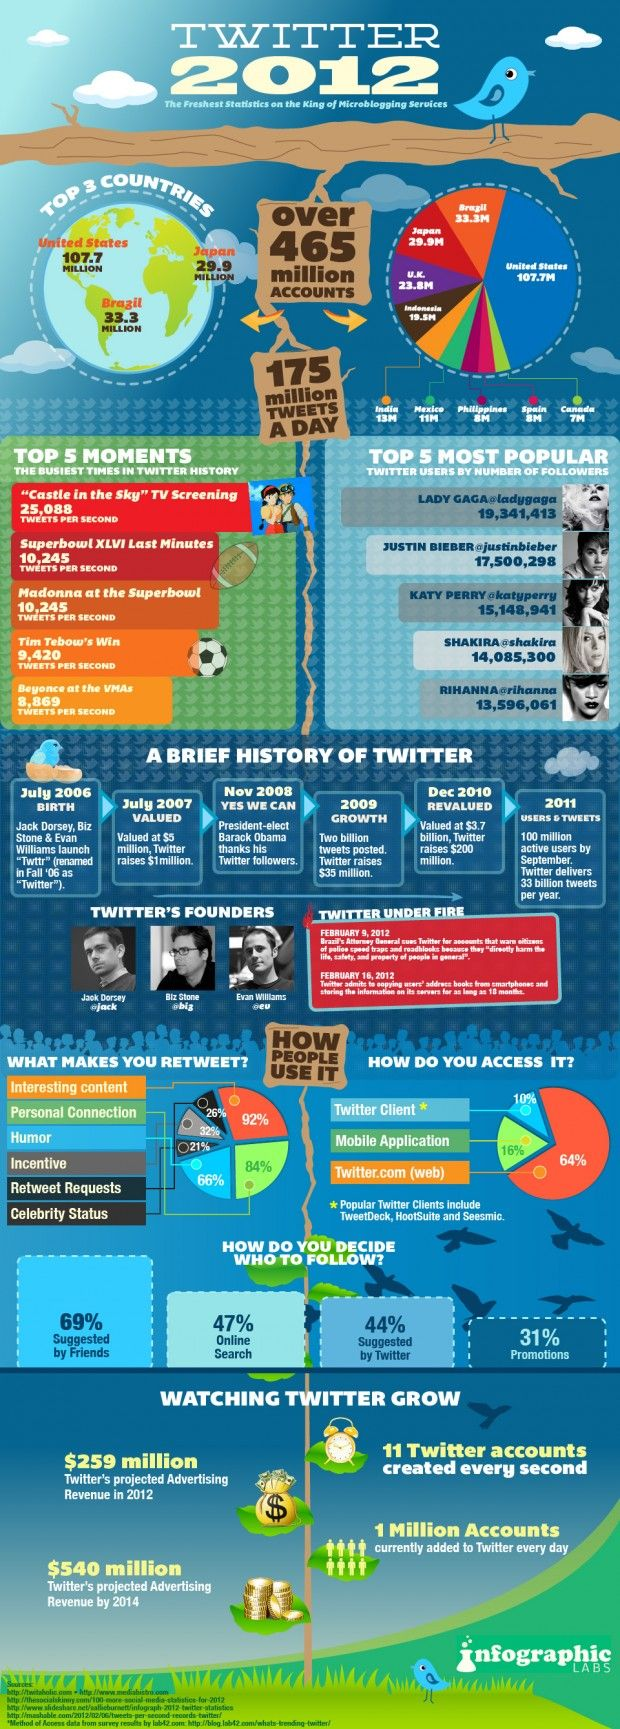 Visual Look at Twitter in 2012